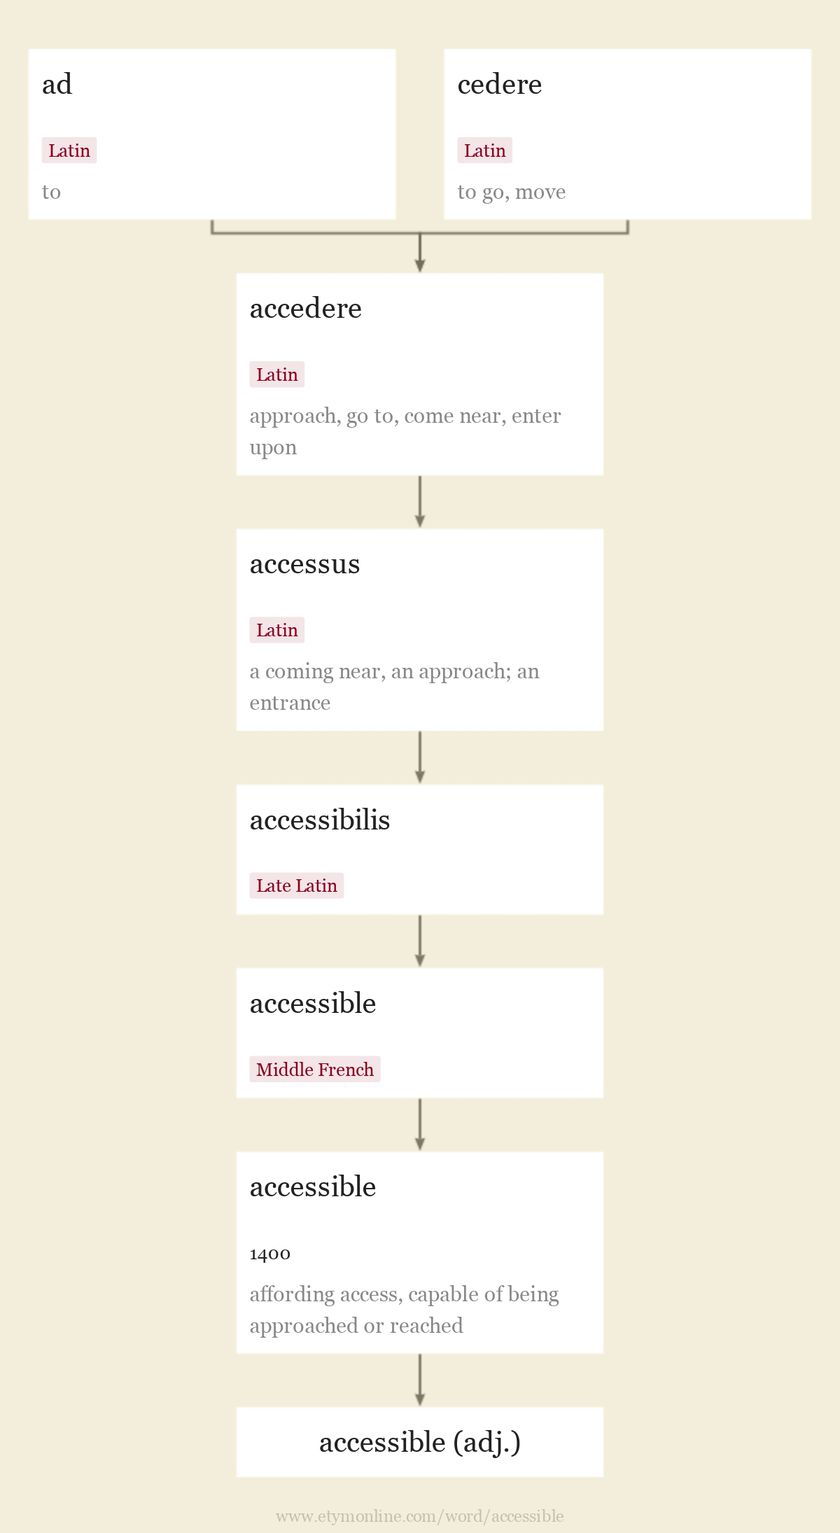 Origin and meaning of accessible